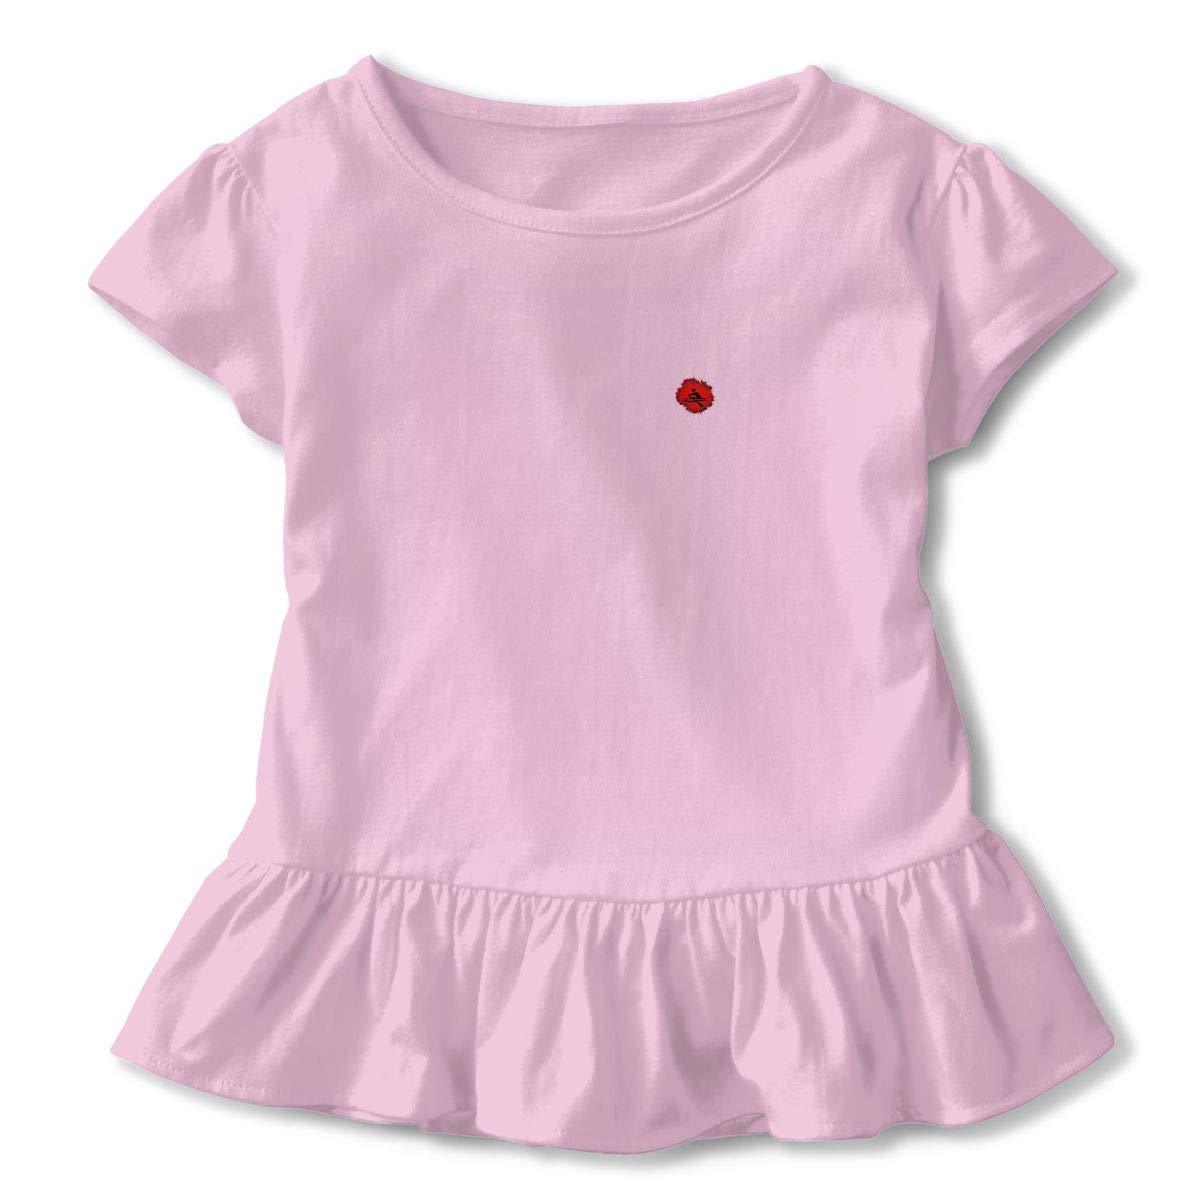 QUZtww Rowing Paint Toddler Girls Cute at Front Short Sleeve Casual Summer Baby Children Shirt